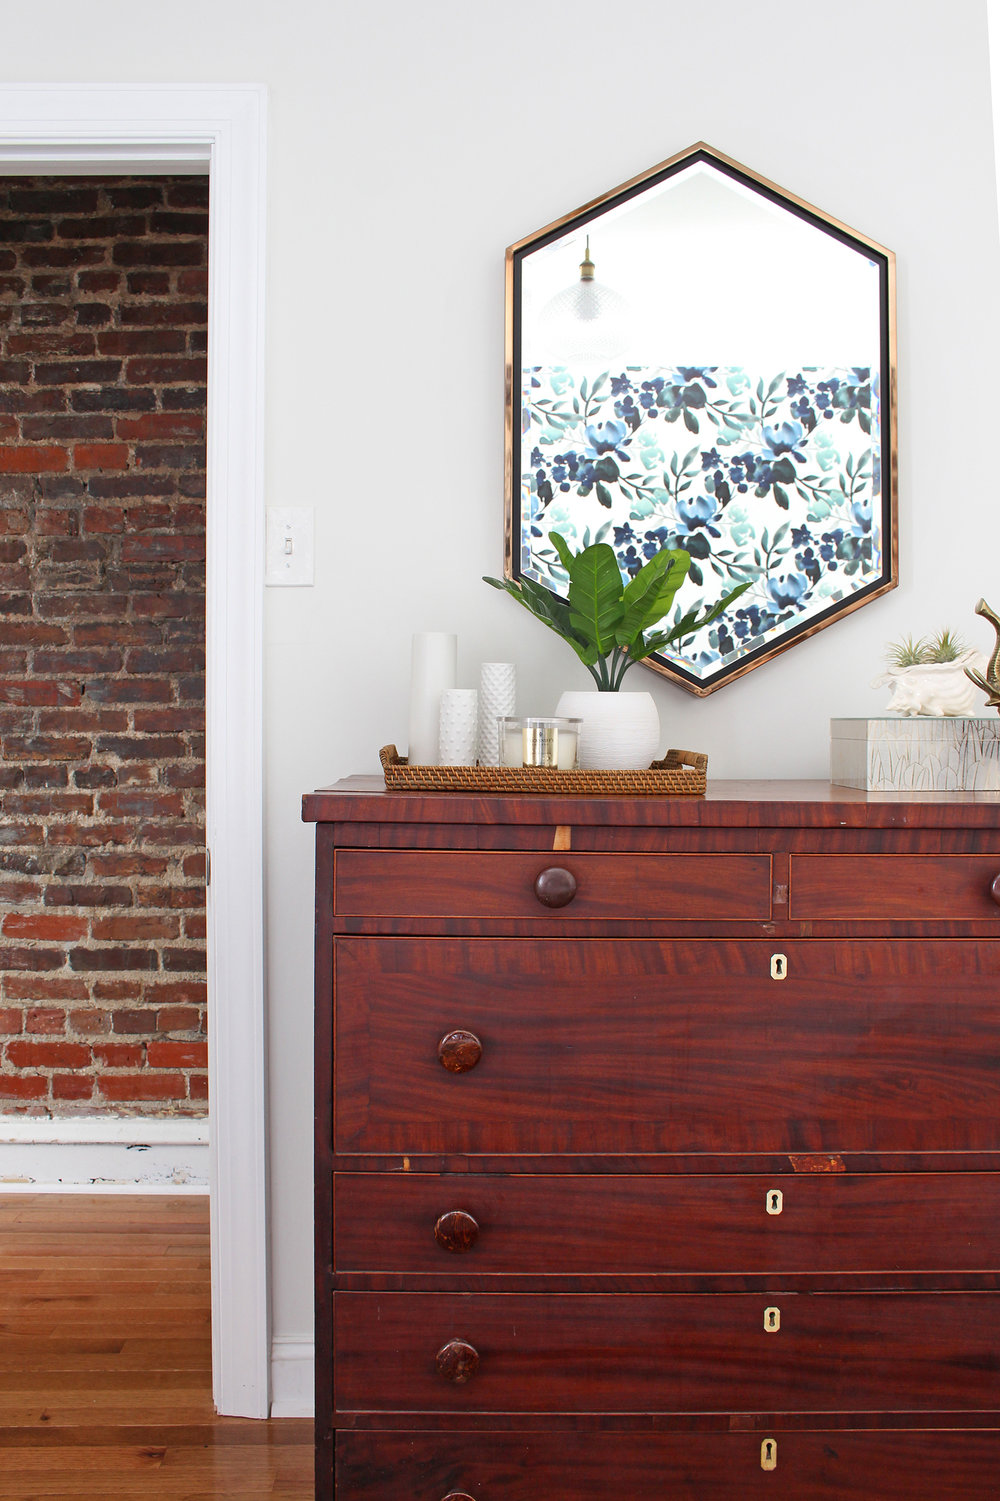 The big One Room Challenge reveal for my eclectic modern farmhouse guest bedroom is up on the blog! Come on over and see the blue-green floral wallpaper, my marble topped vintage nightstands, and my take on modernizing an antique dresser! || Design: Mix & Match Design Company